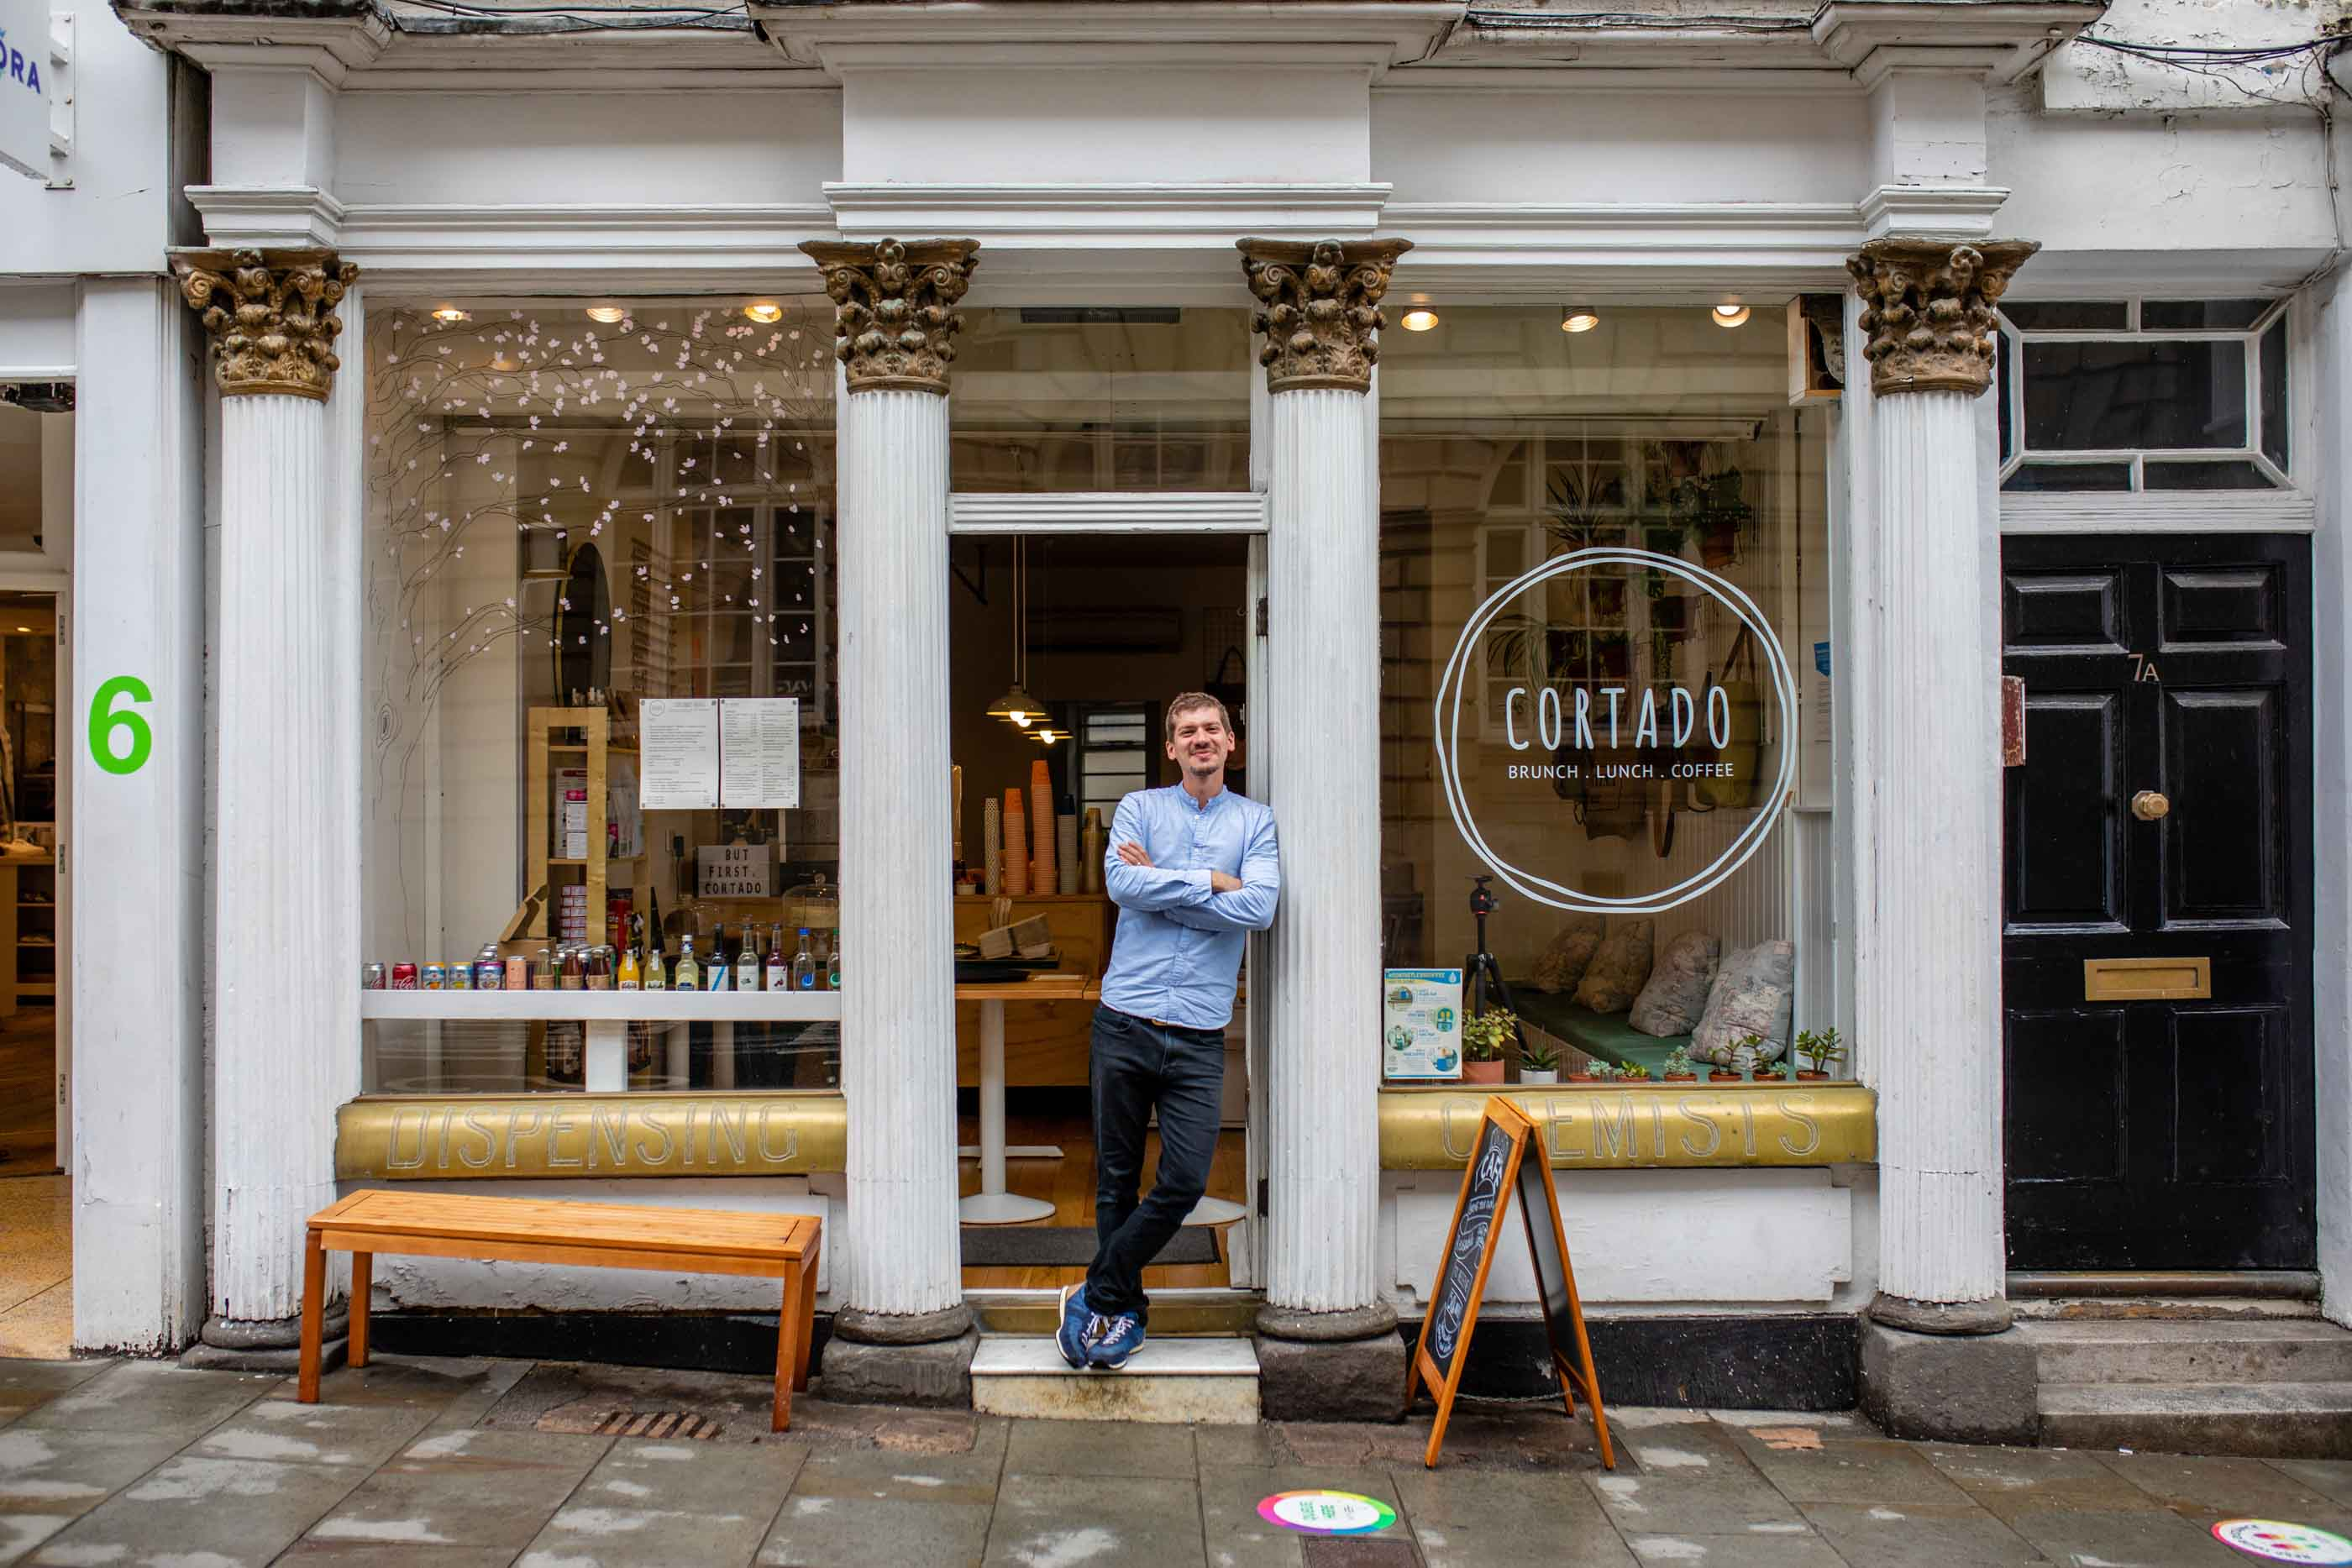 Fran, Owner of Cortado, Bath, standing outside his coffee shop.